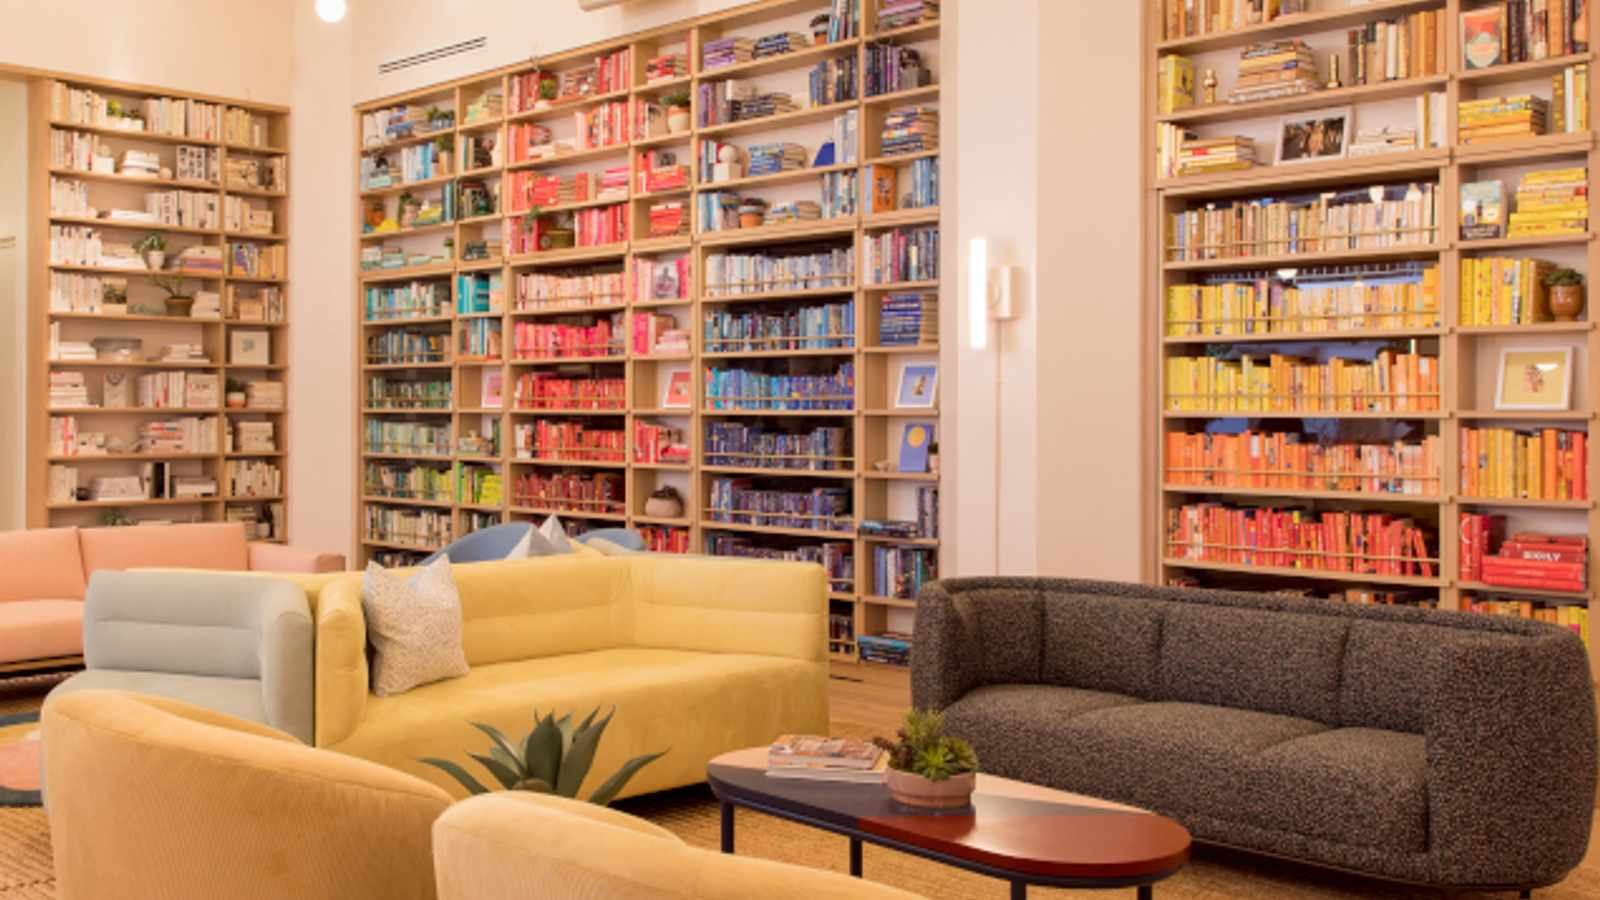 5 ideas for decorating with books